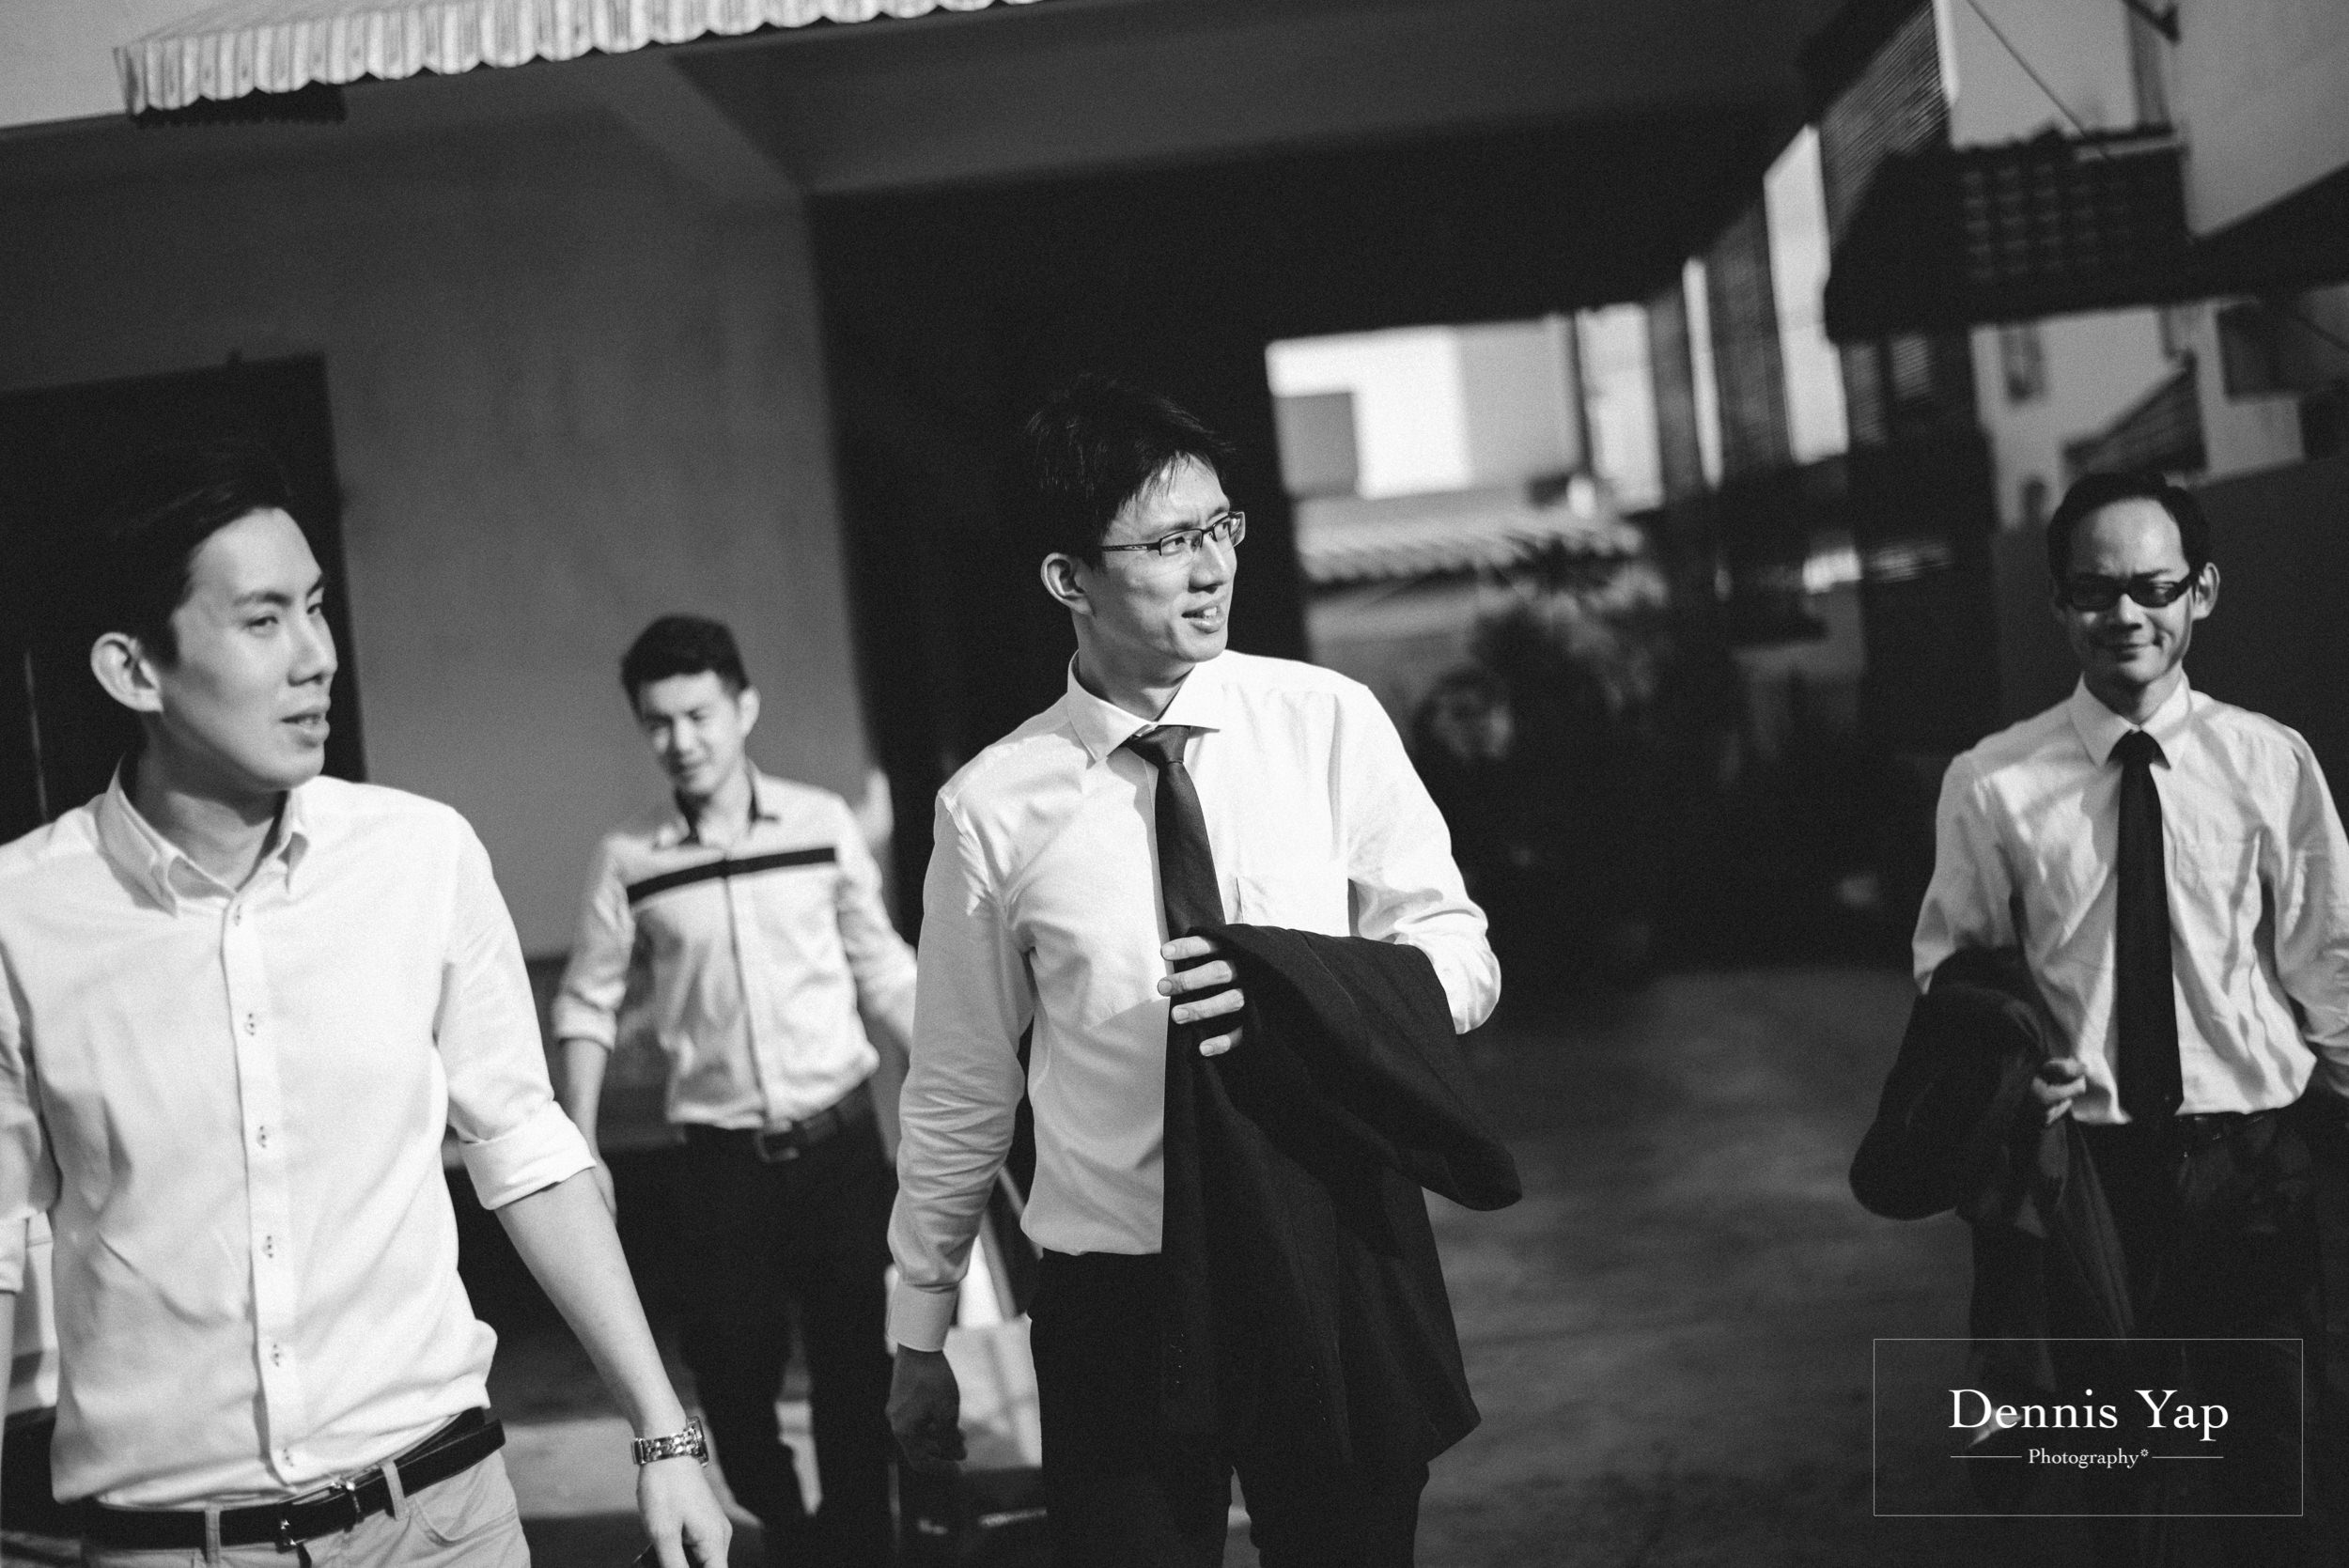 daniel amelia wedding day wesley methodist church setiawan dennis yap photography malaysia0003daniel amelia wedding day westly methodist church setiawan dennis yap photography malaysia-3.jpg